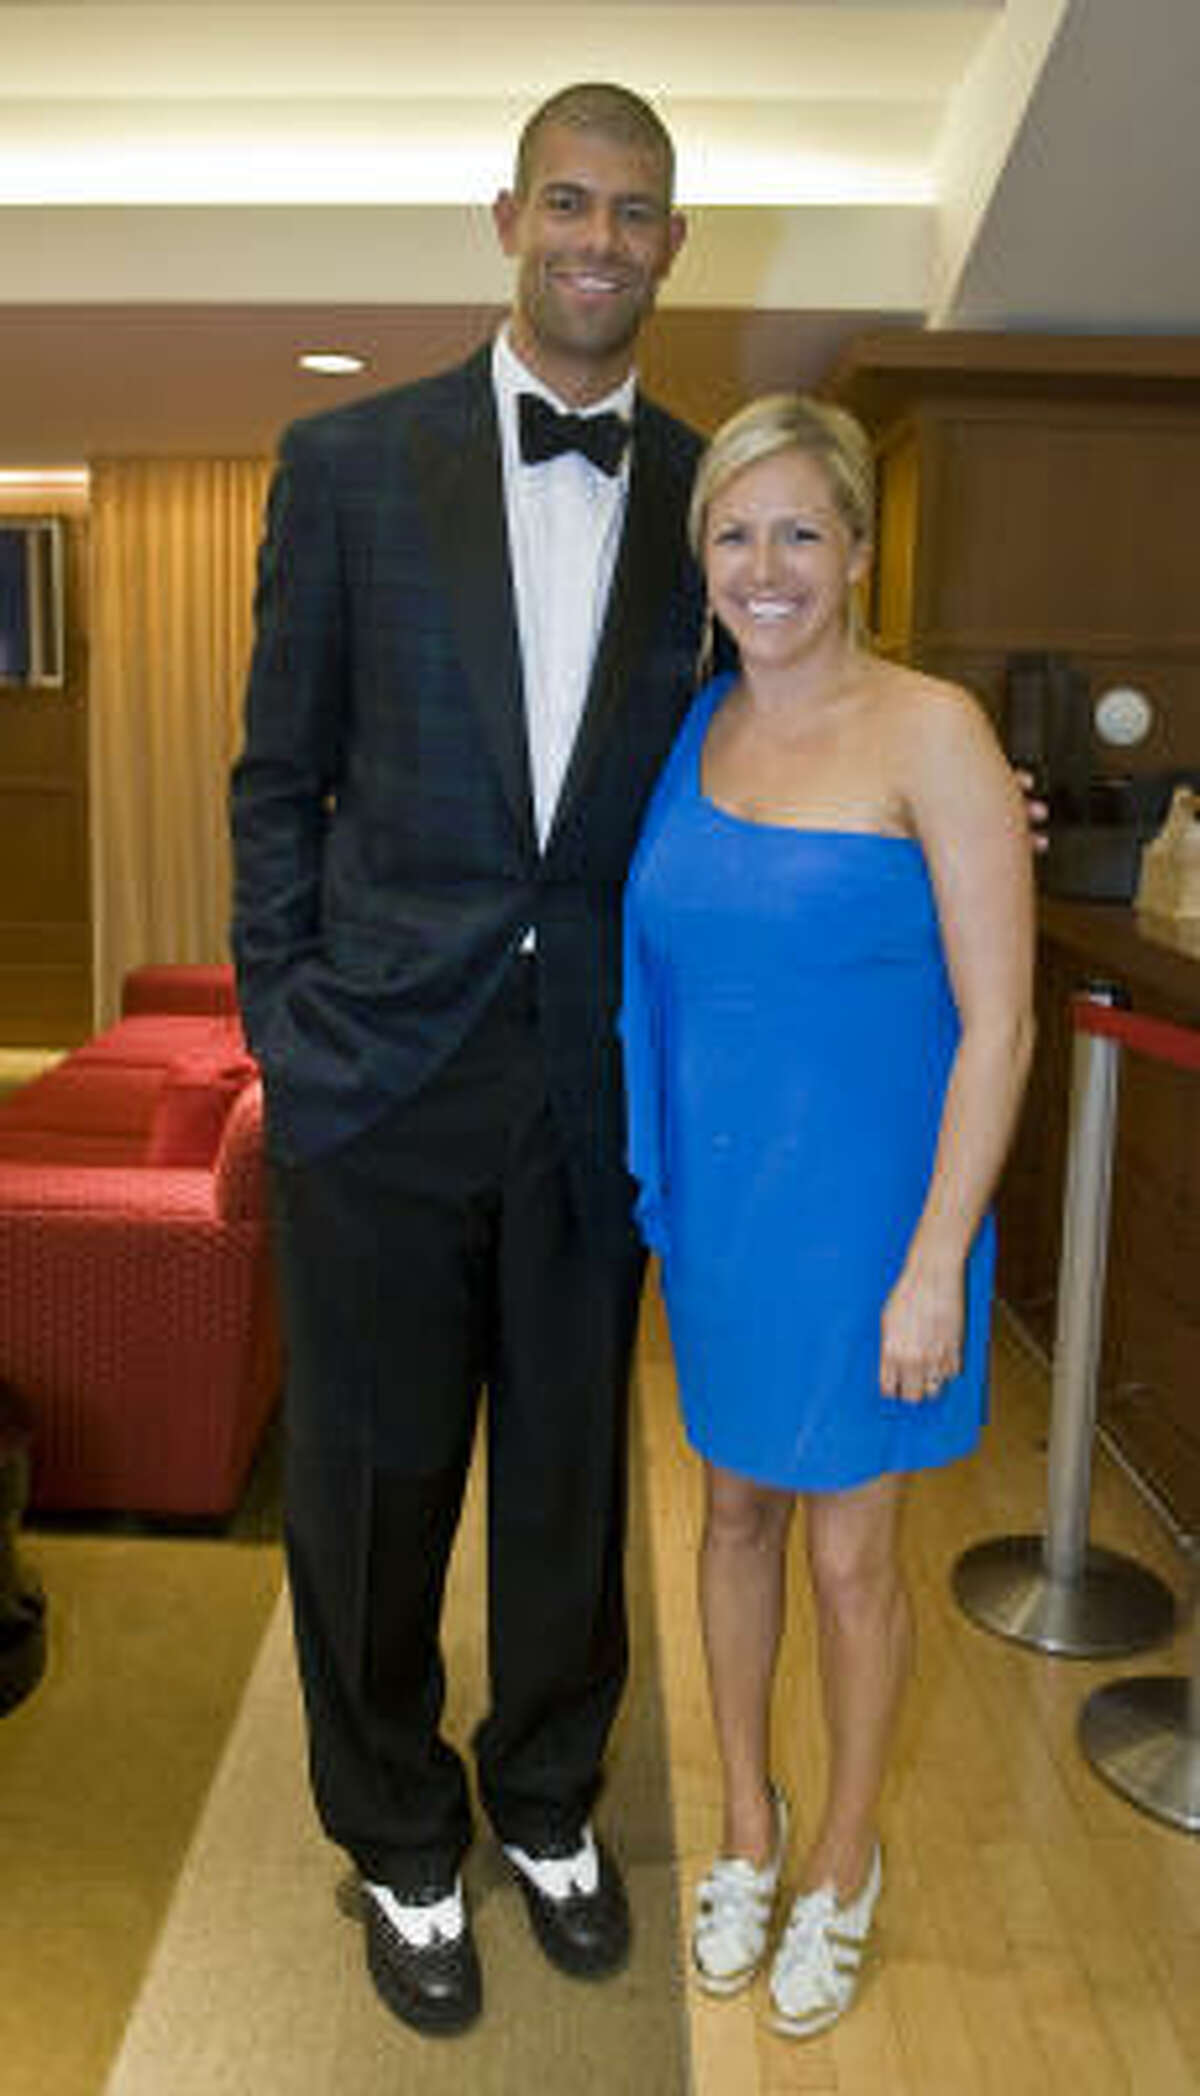 Rockets Shane Battier comes decked out in a black tuxedo accompanied by his wife Heidi Battier for the Houston Rockets